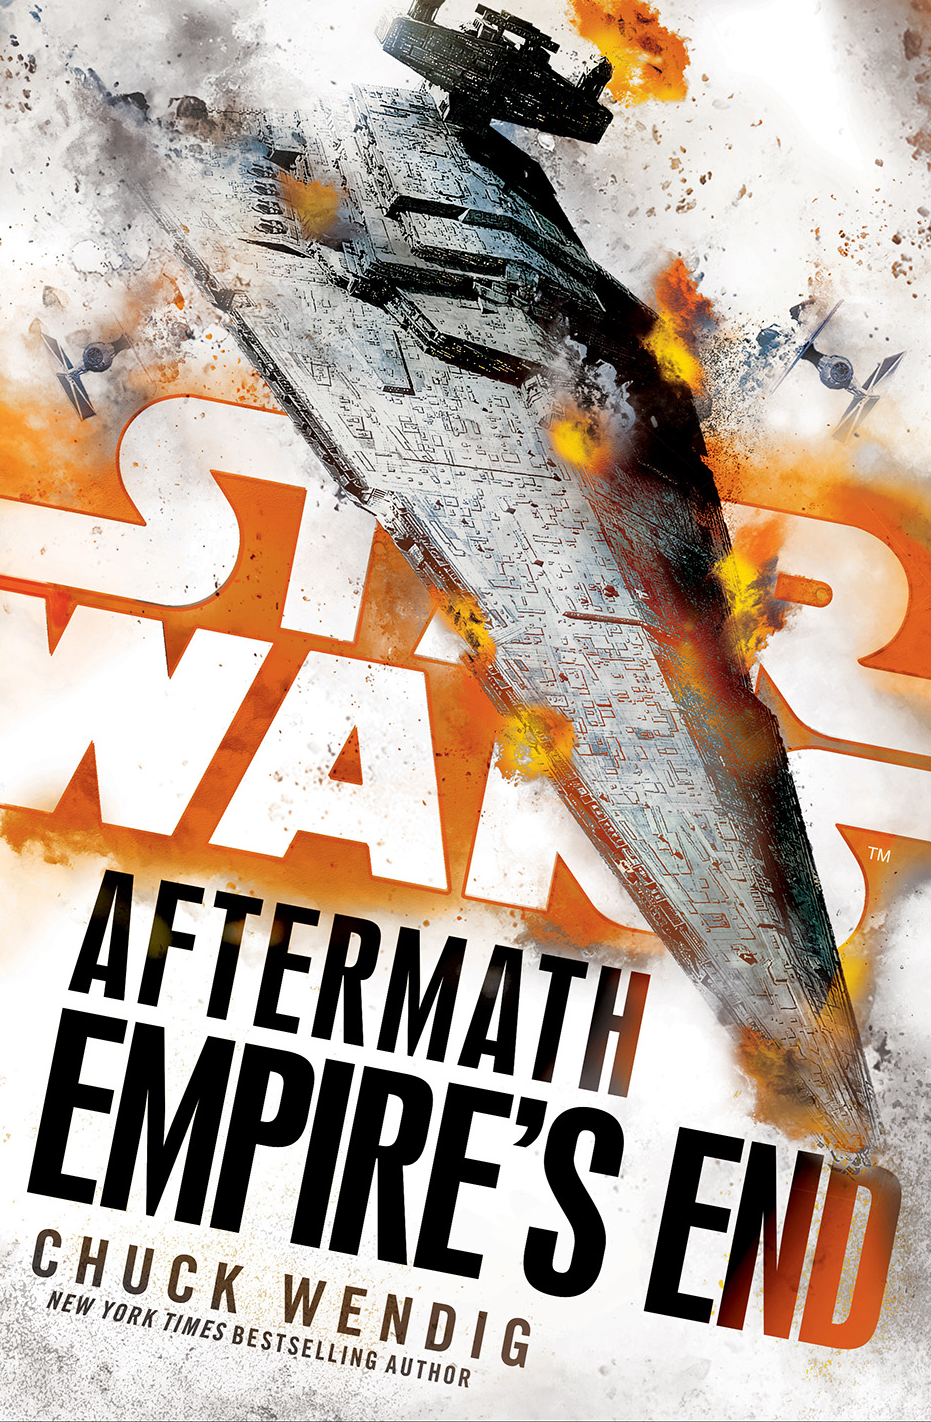 aftermath empire's end cover